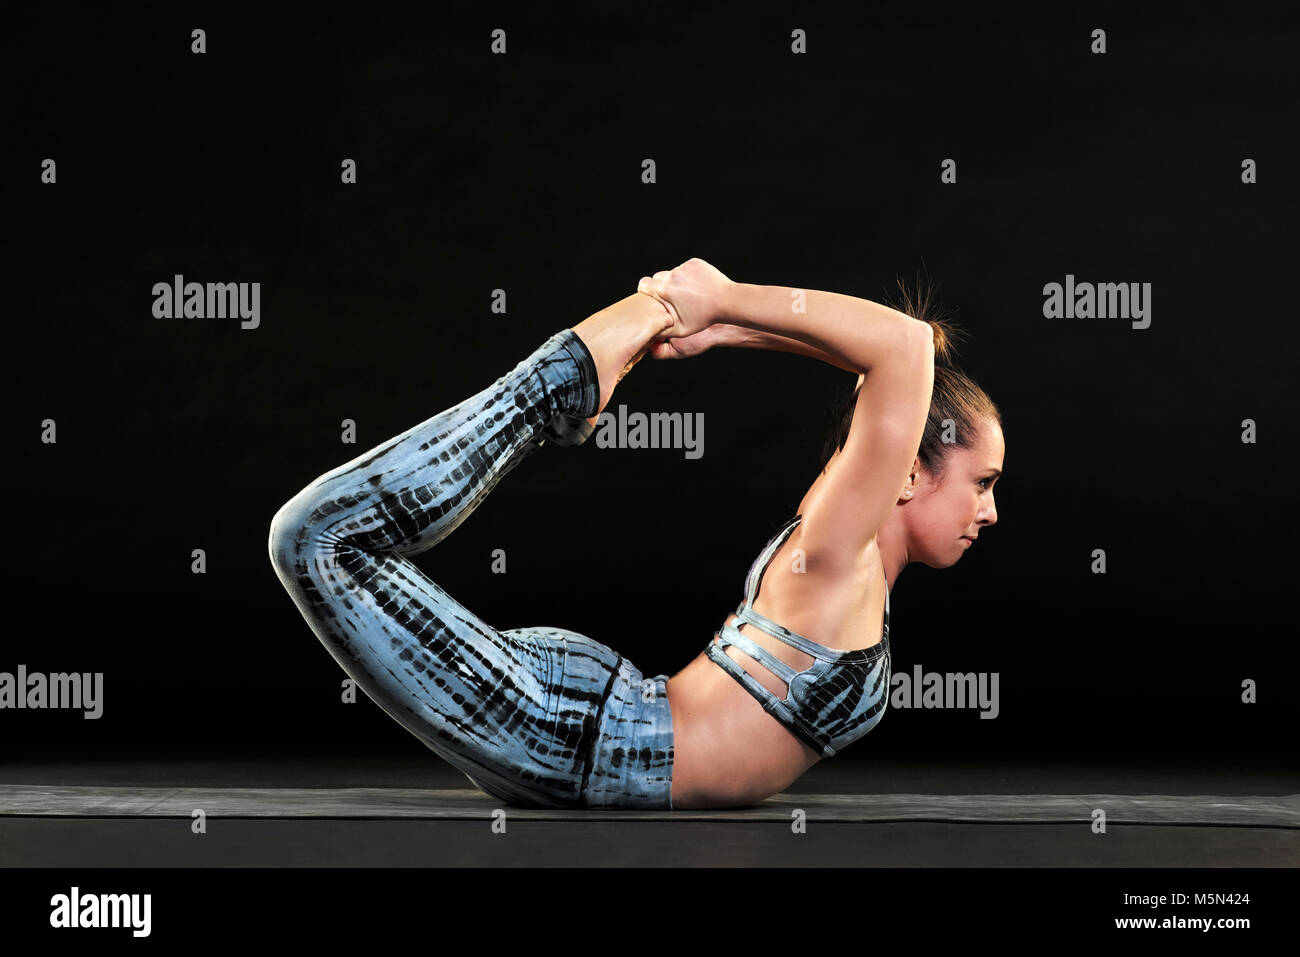 Athletic woman demonstrating the bow pose in yoga in a close up side view over a black background lying on her abdomen - Stock Image